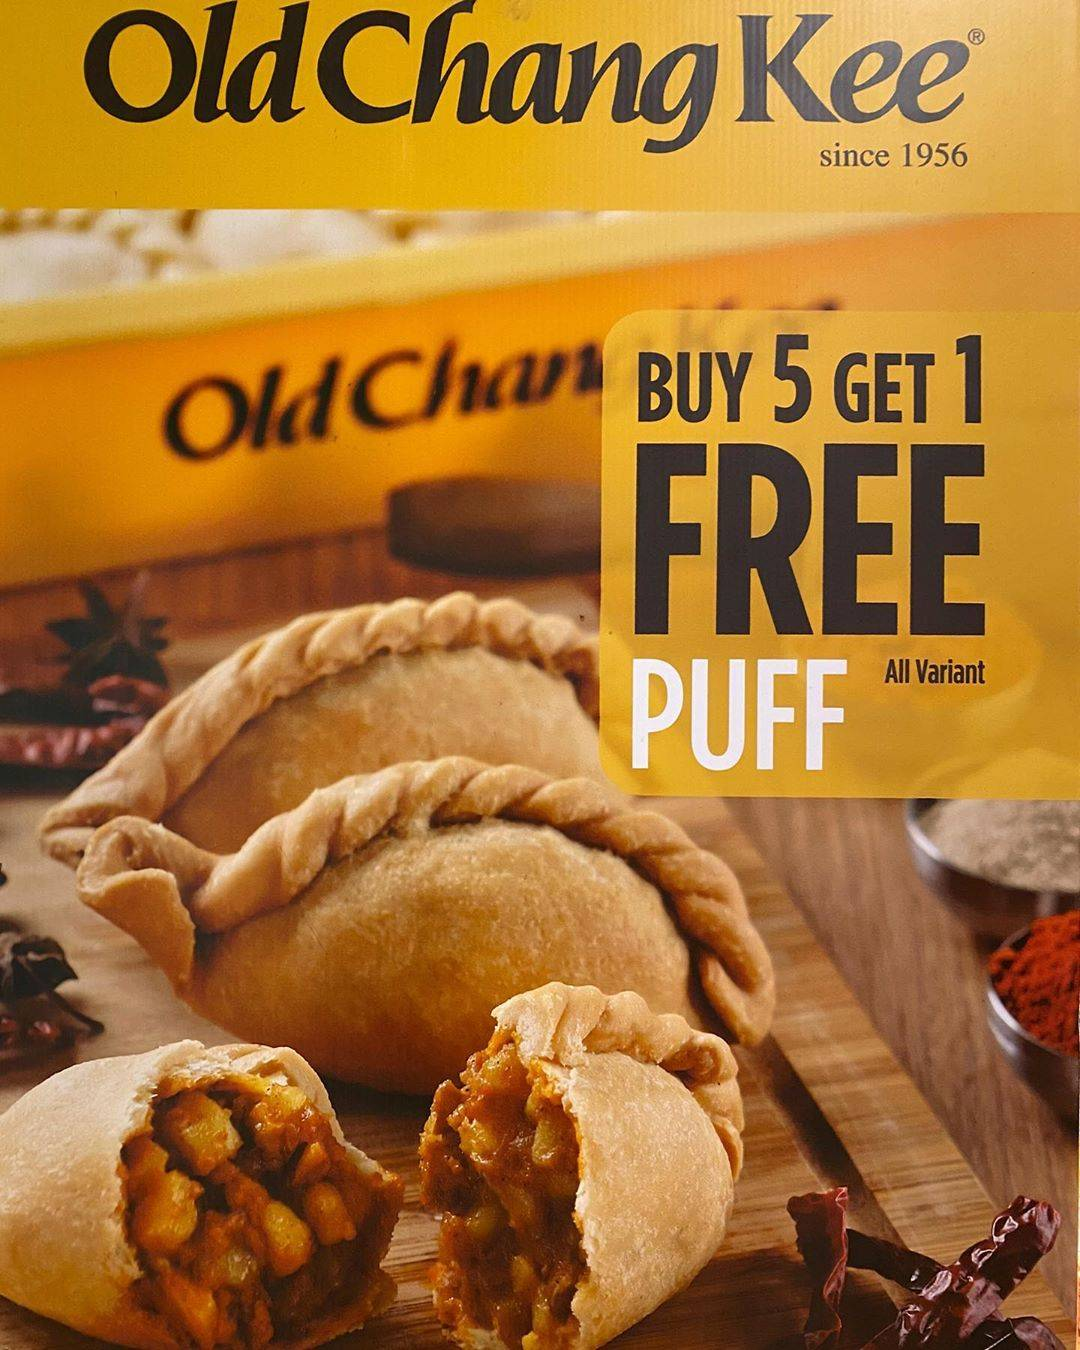 Old Chang Kee Promo Buy 5 Get 1 Free